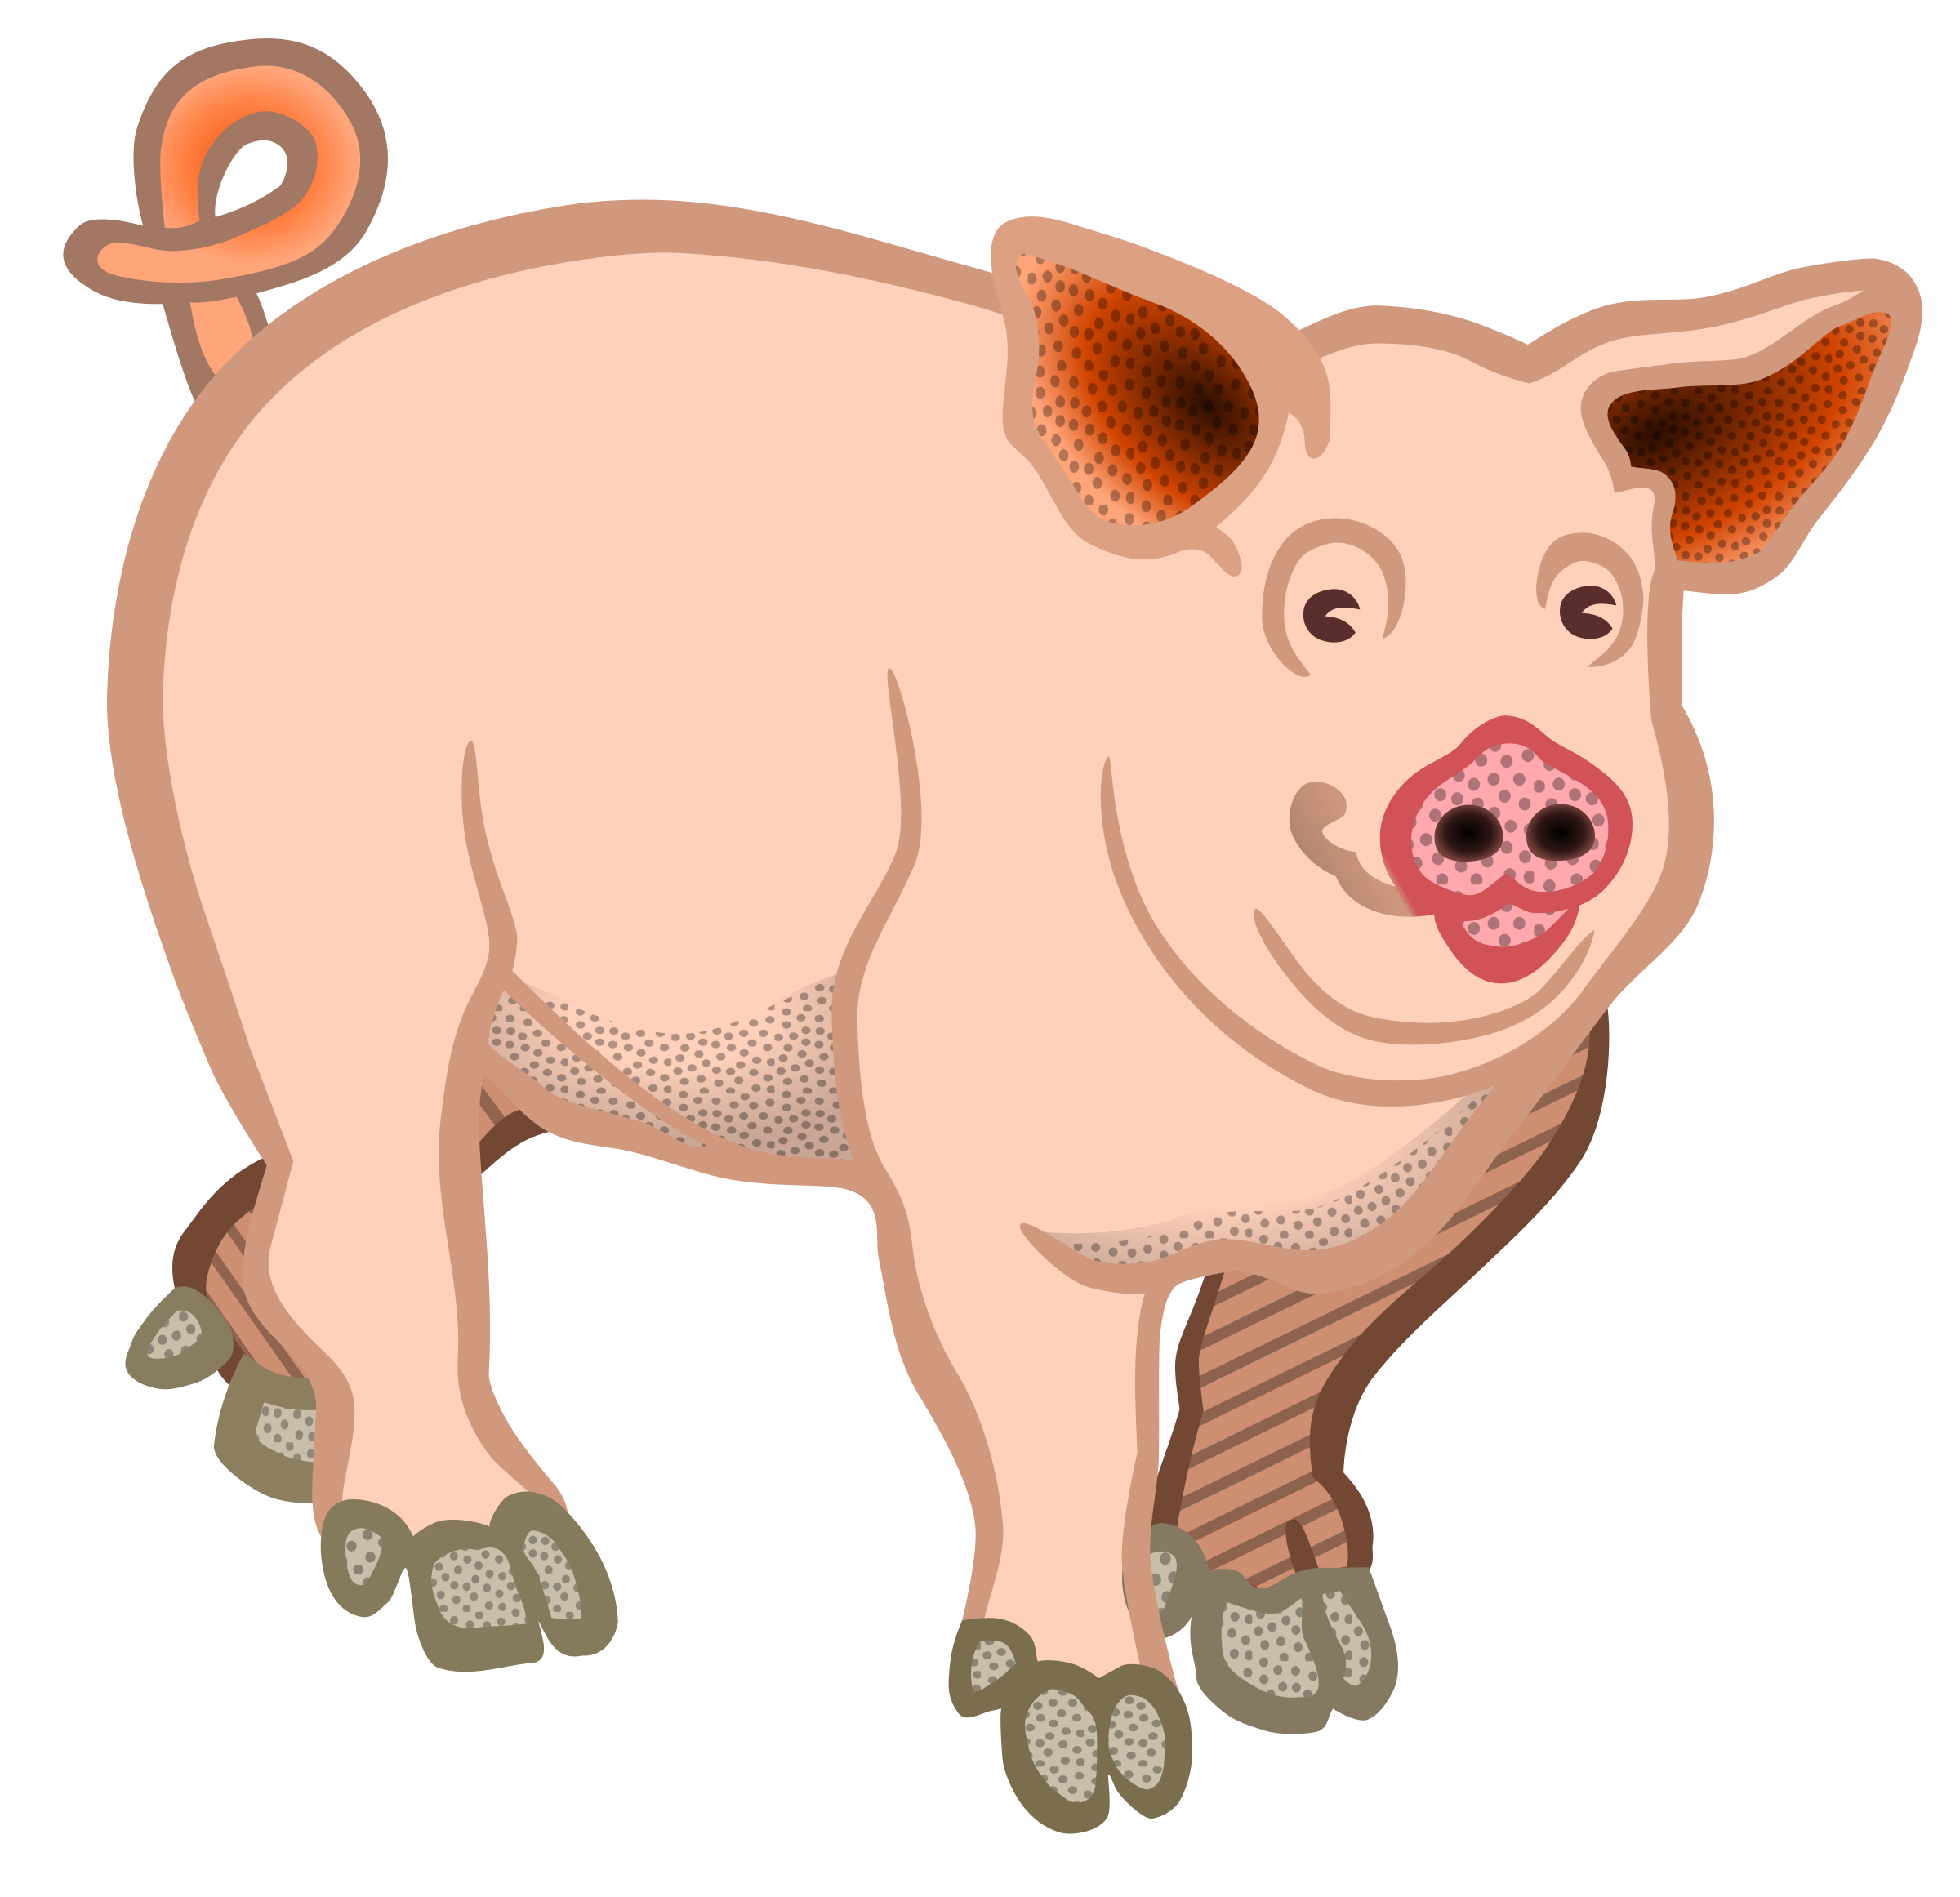 Cliparts for farm animal. Free clipart of a pig